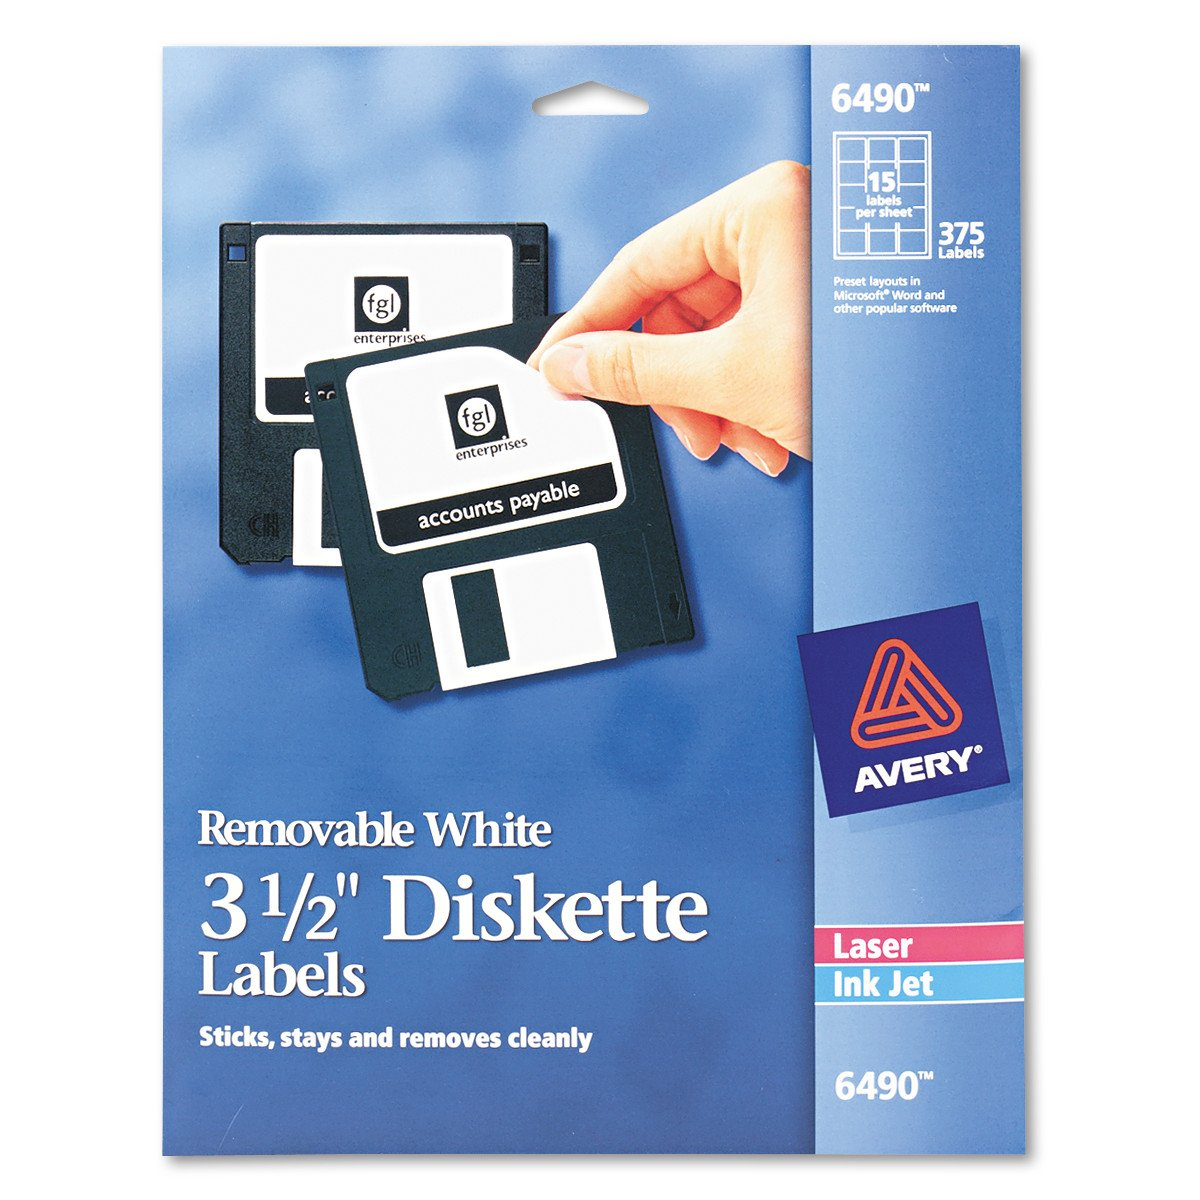 Avery Media Labels (AVE6490), 3-1/2'' Diskette Labels 15 labels per sheet, 375 labels total